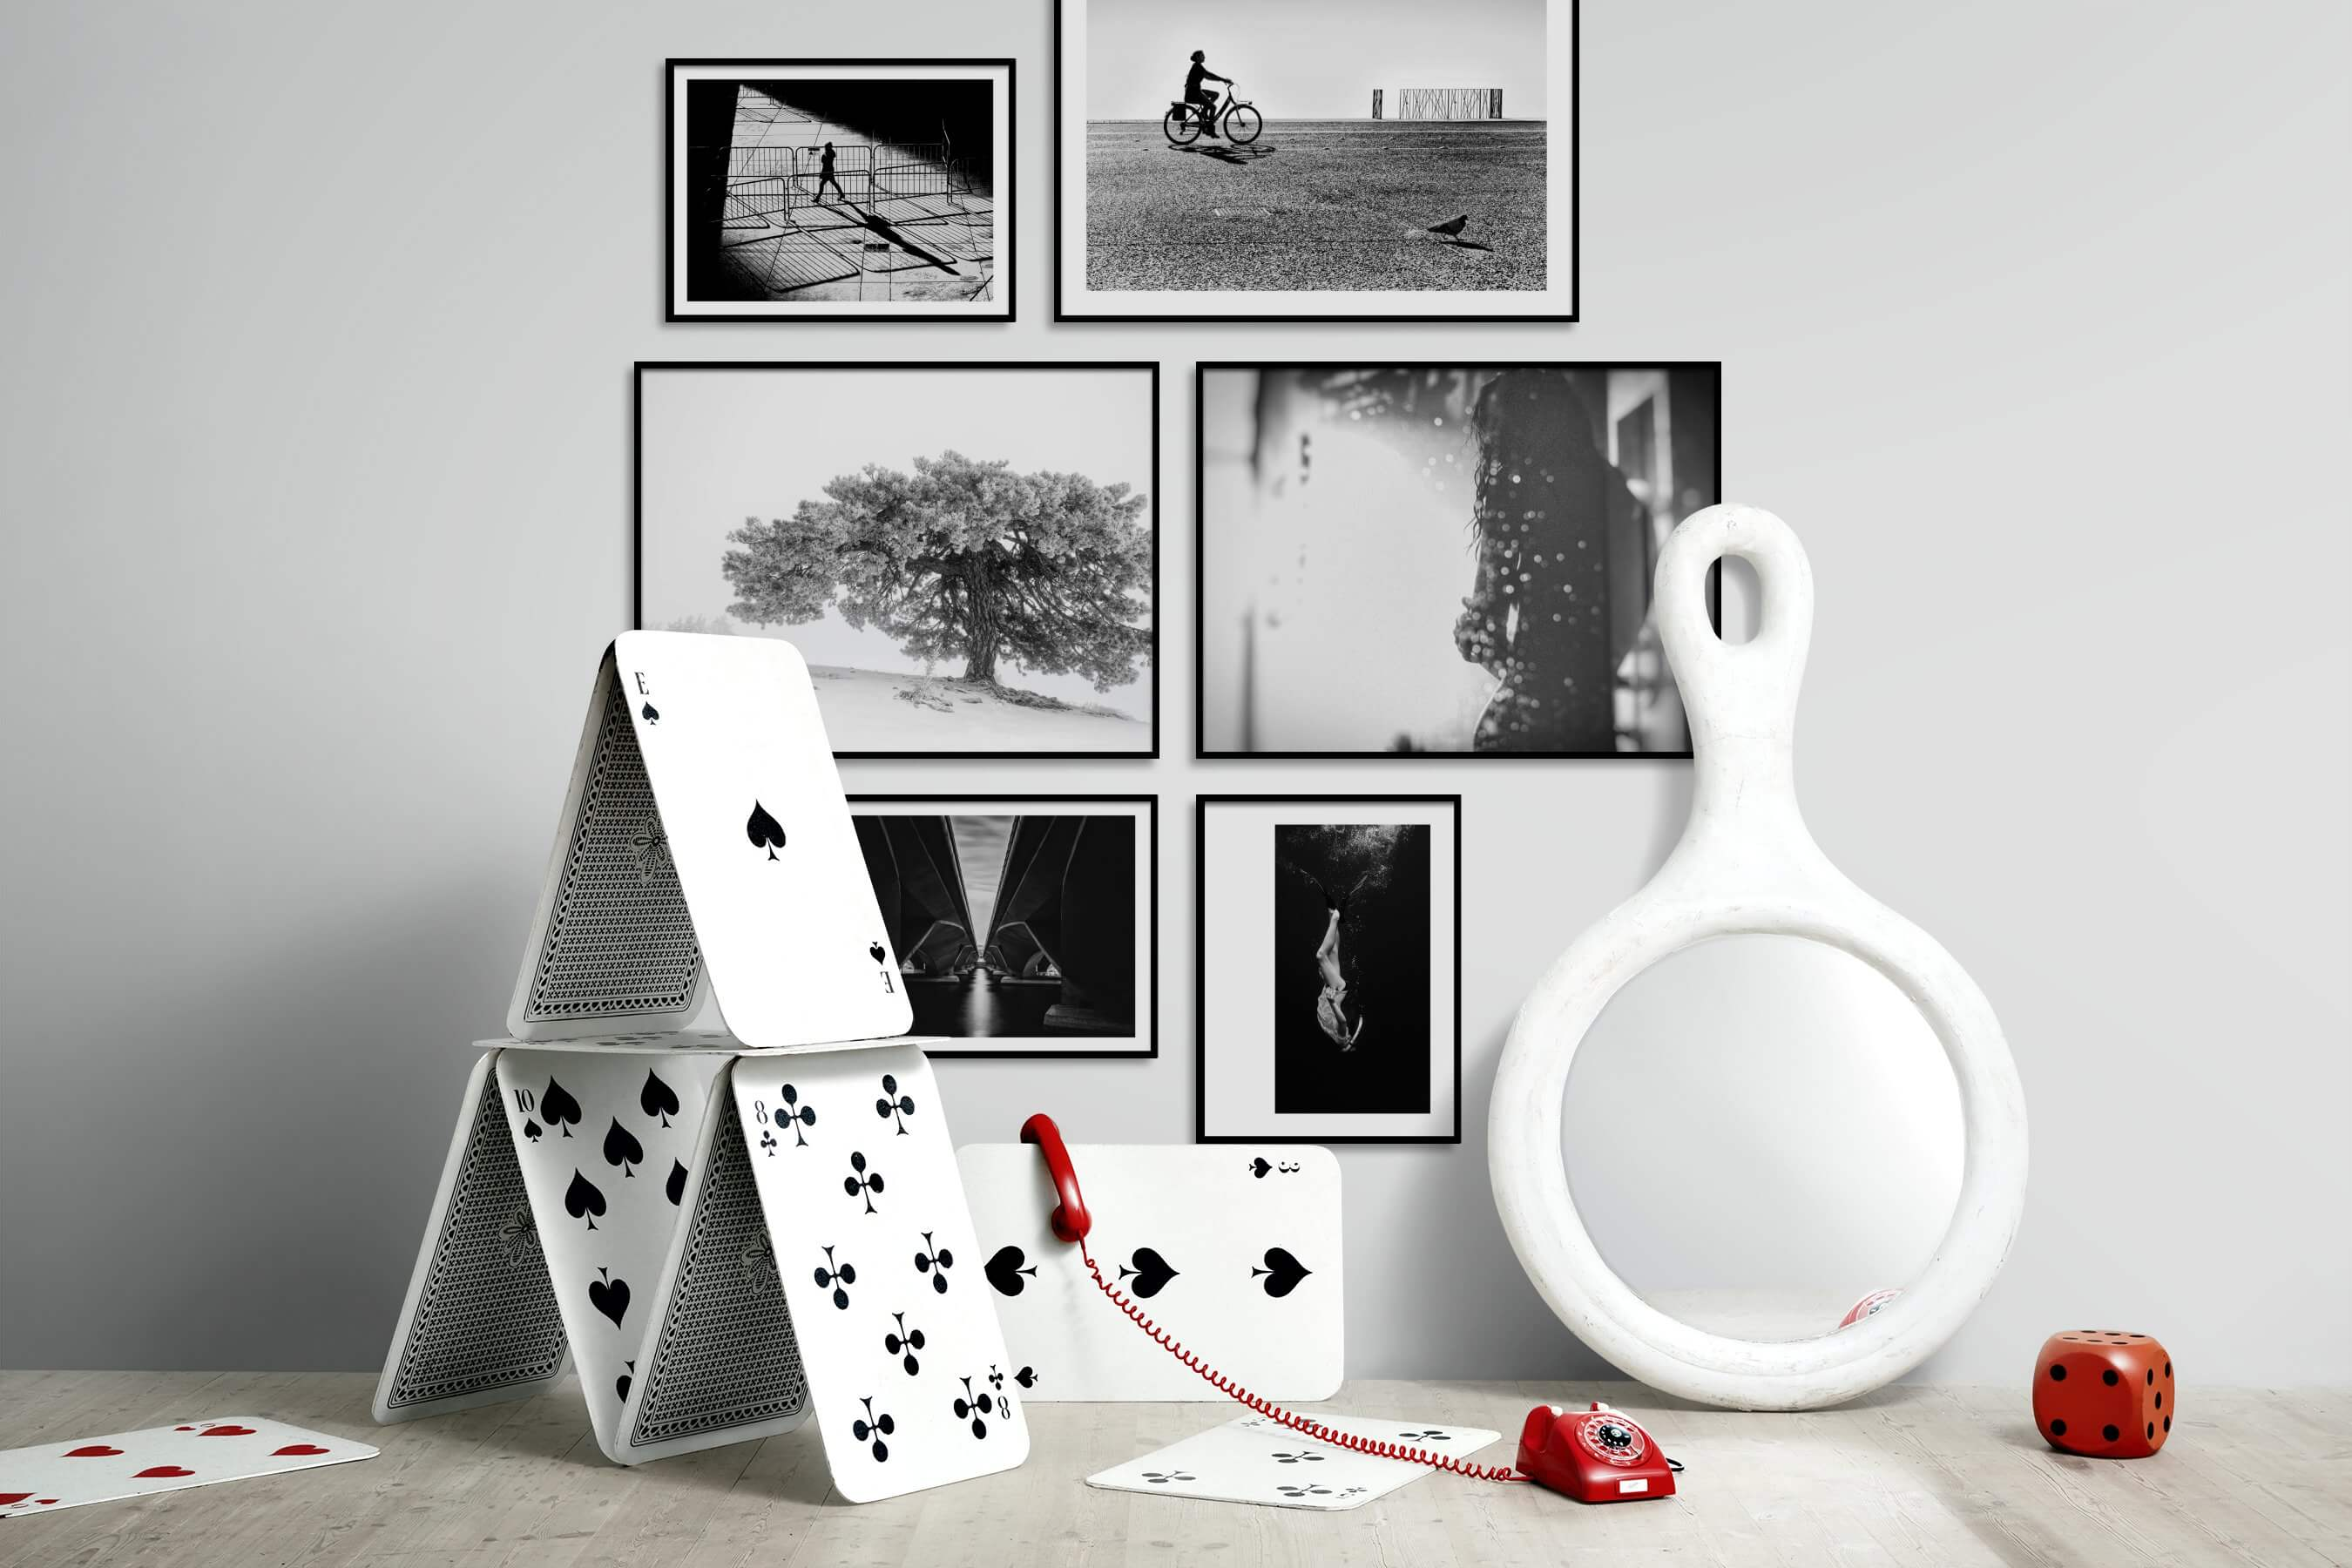 Gallery wall idea with six framed pictures arranged on a wall depicting Black & White, City Life, For the Moderate, Bright Tones, Nature, Artsy, and Beach & Water